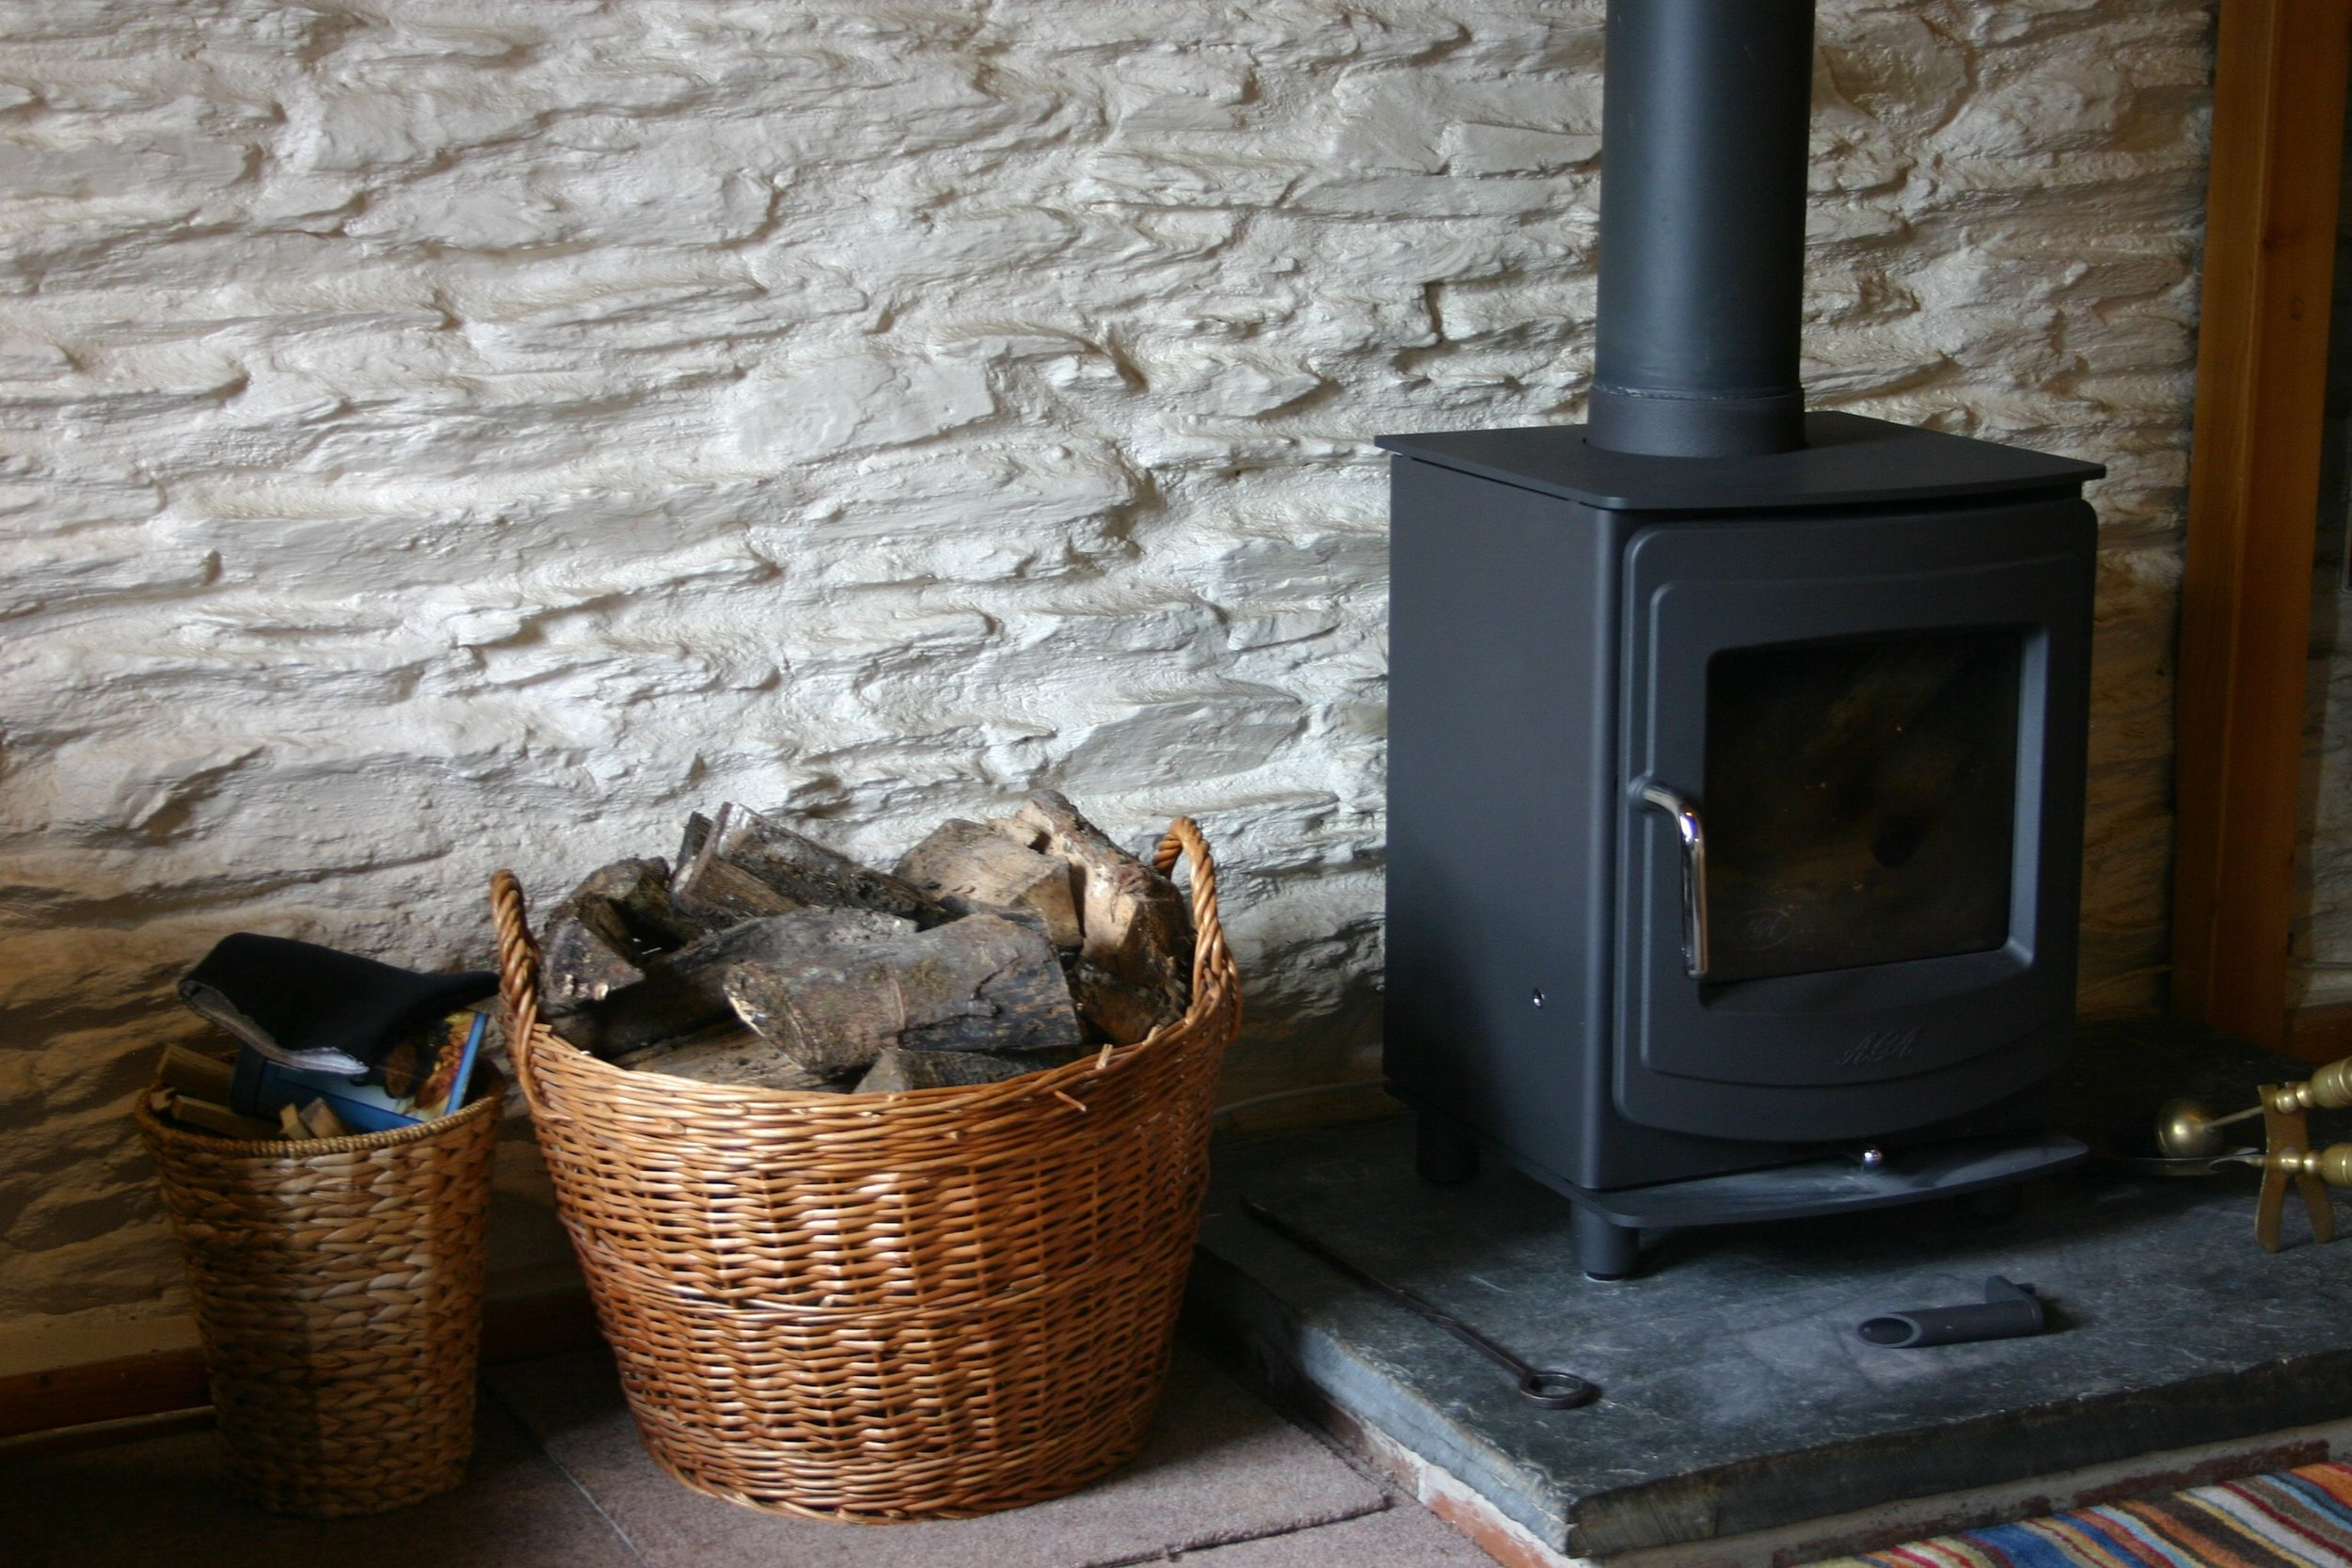 Oak Cottage - A 2 bedroom holiday cottage graded five stars by Visit Wales. Sleeping up to four and has a comfortable sitting room, spacious dining kitchen, bathroom with shower over bath. There are two bedrooms one with double bed, the other with two single beds.